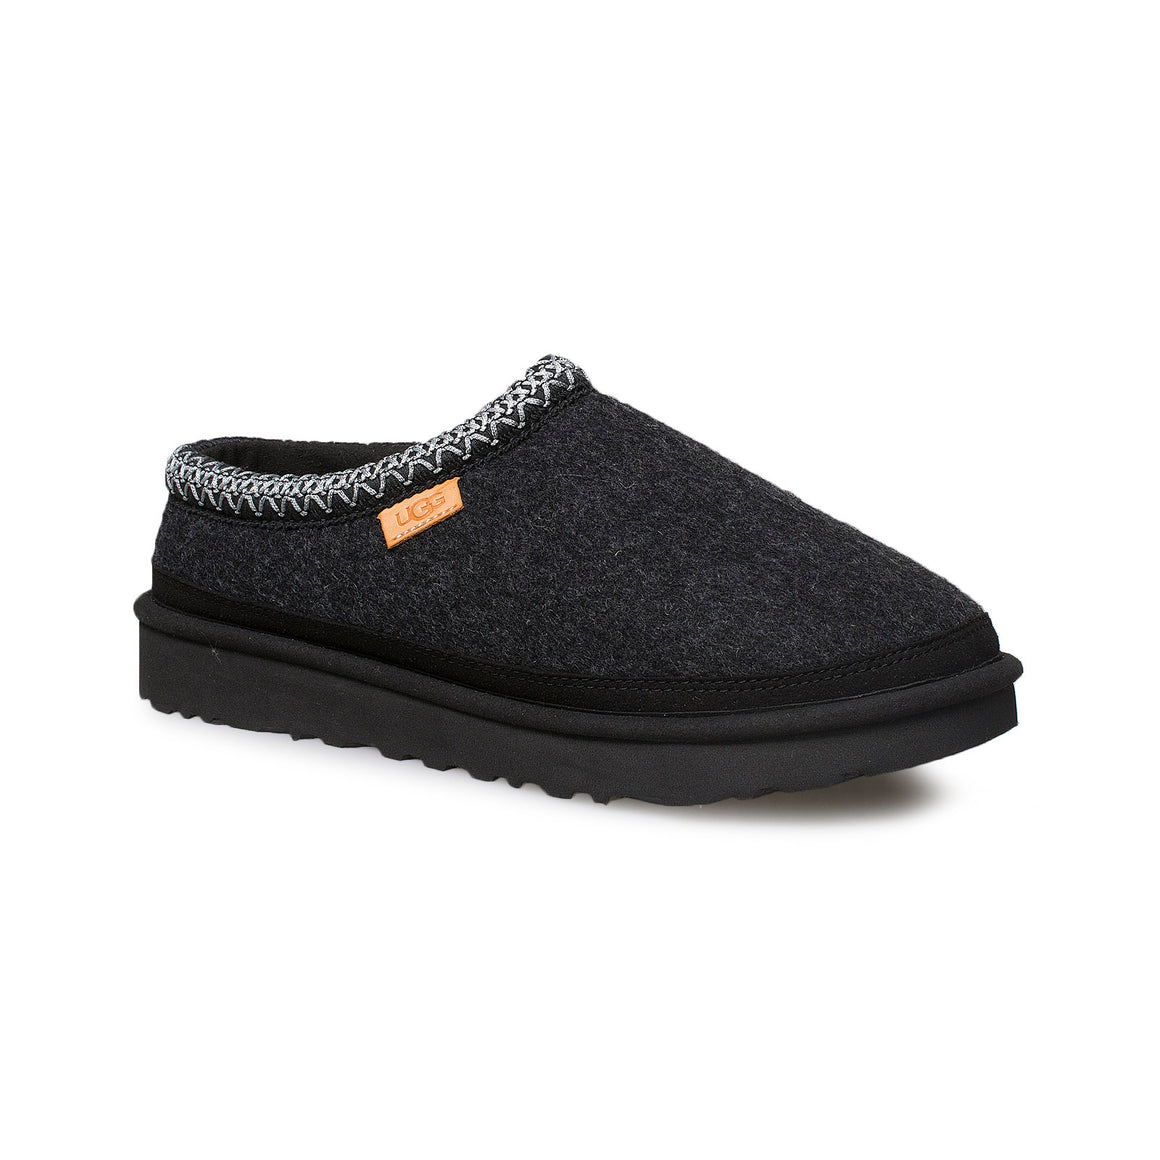 UGG Tasman Wool Black TNL Slippers - Men's